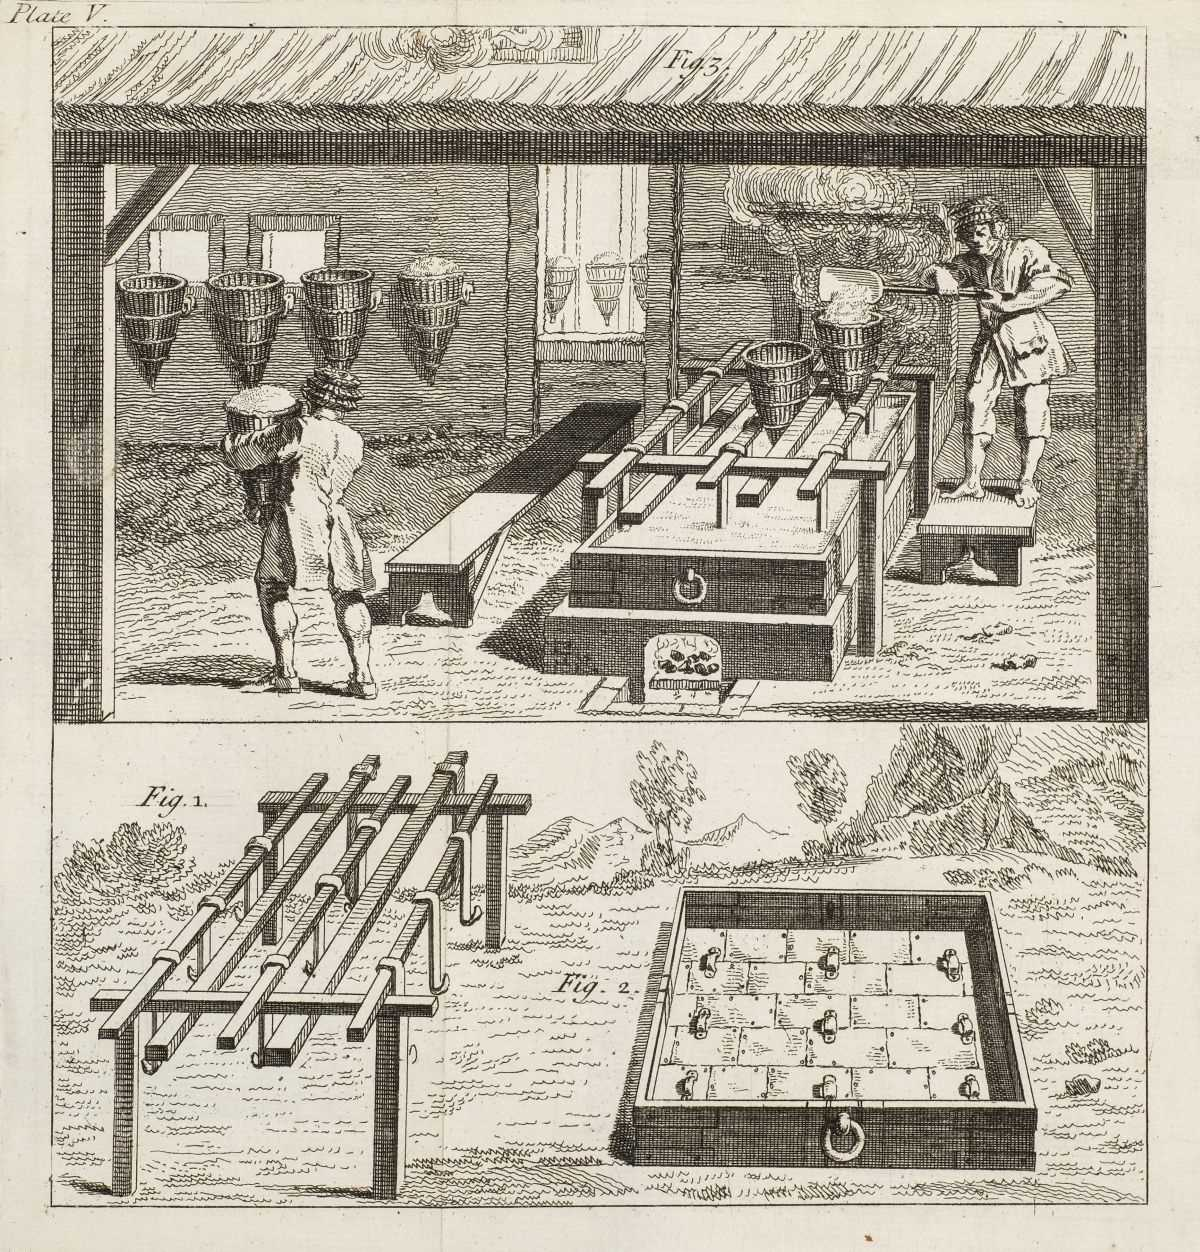 Lot 198 - Brownrigg (William). The Art of making Common Salt, 1st edition, 1748